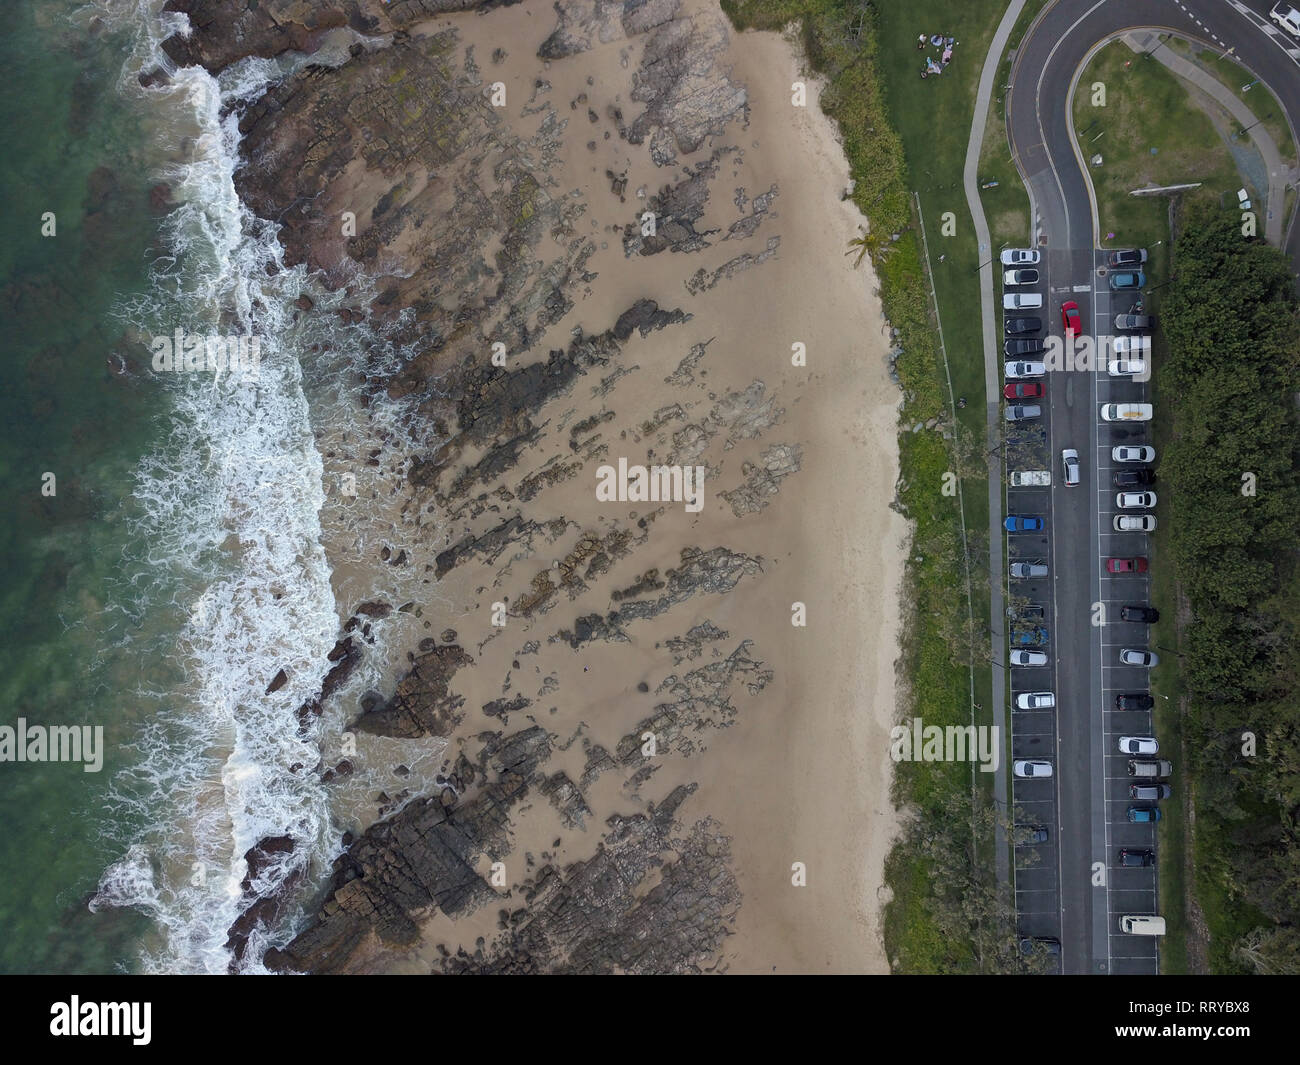 Australian car park aerial view with cars, car parking spaces, ocean and beach from above. Captured with drone photography in Queensland, Australia. - Stock Image